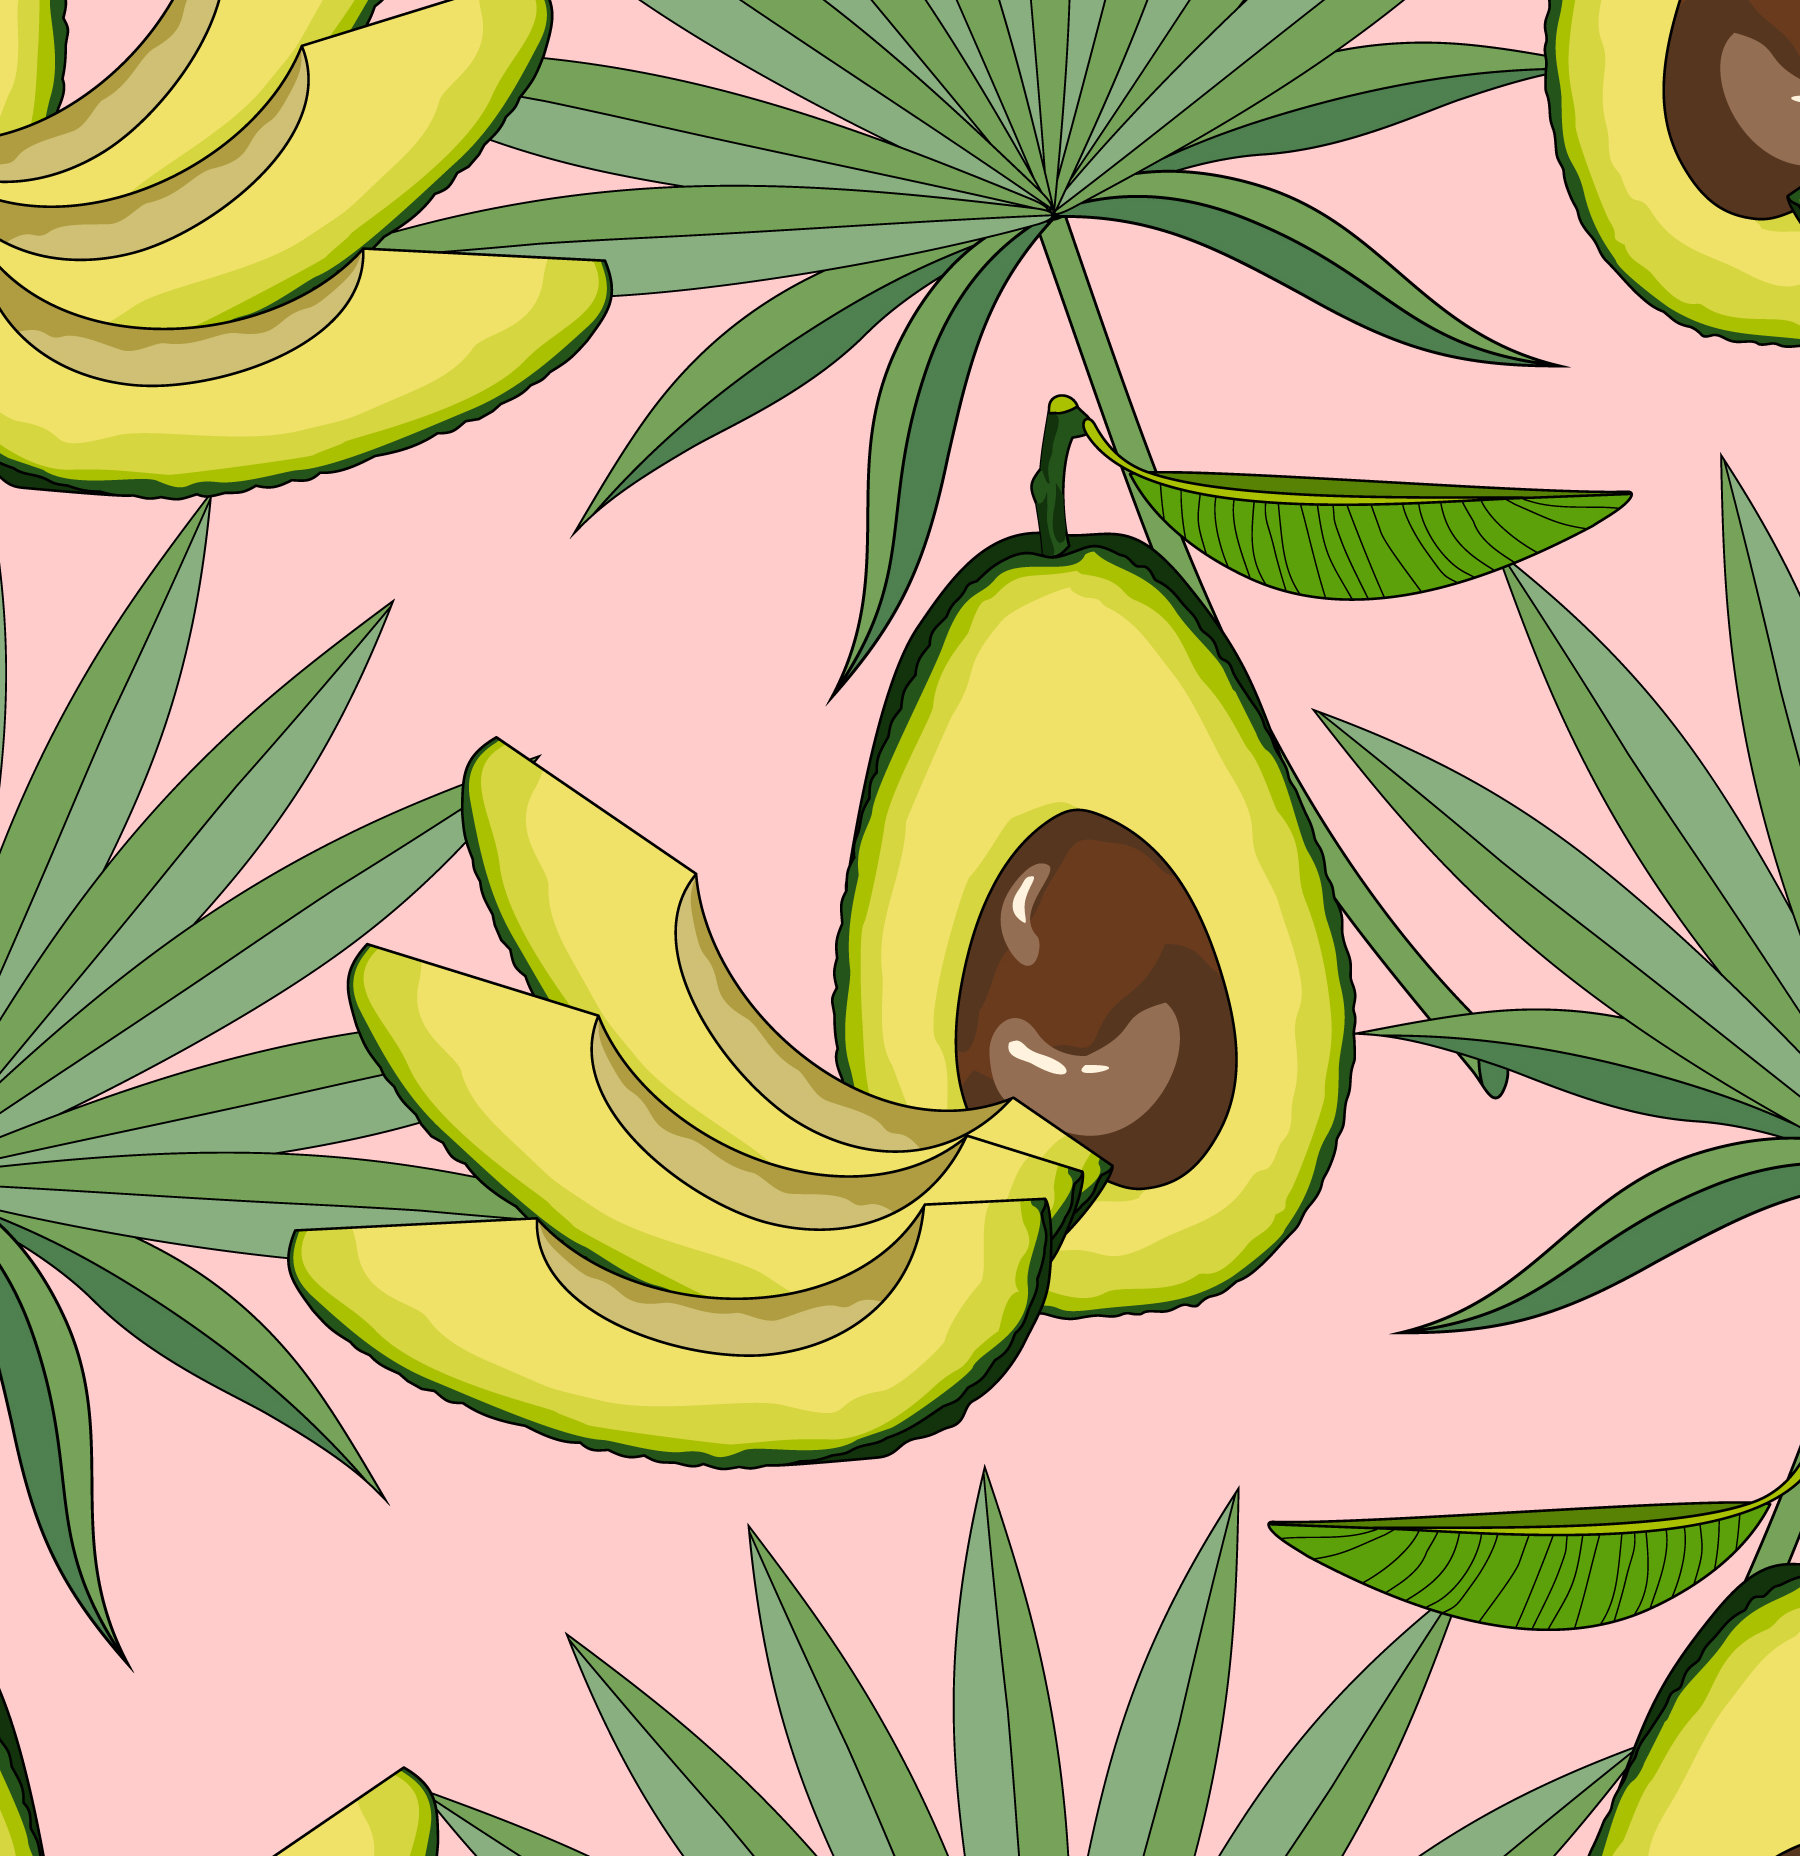 The 8 BestFoods to Eat for Healthy-Looking Skin